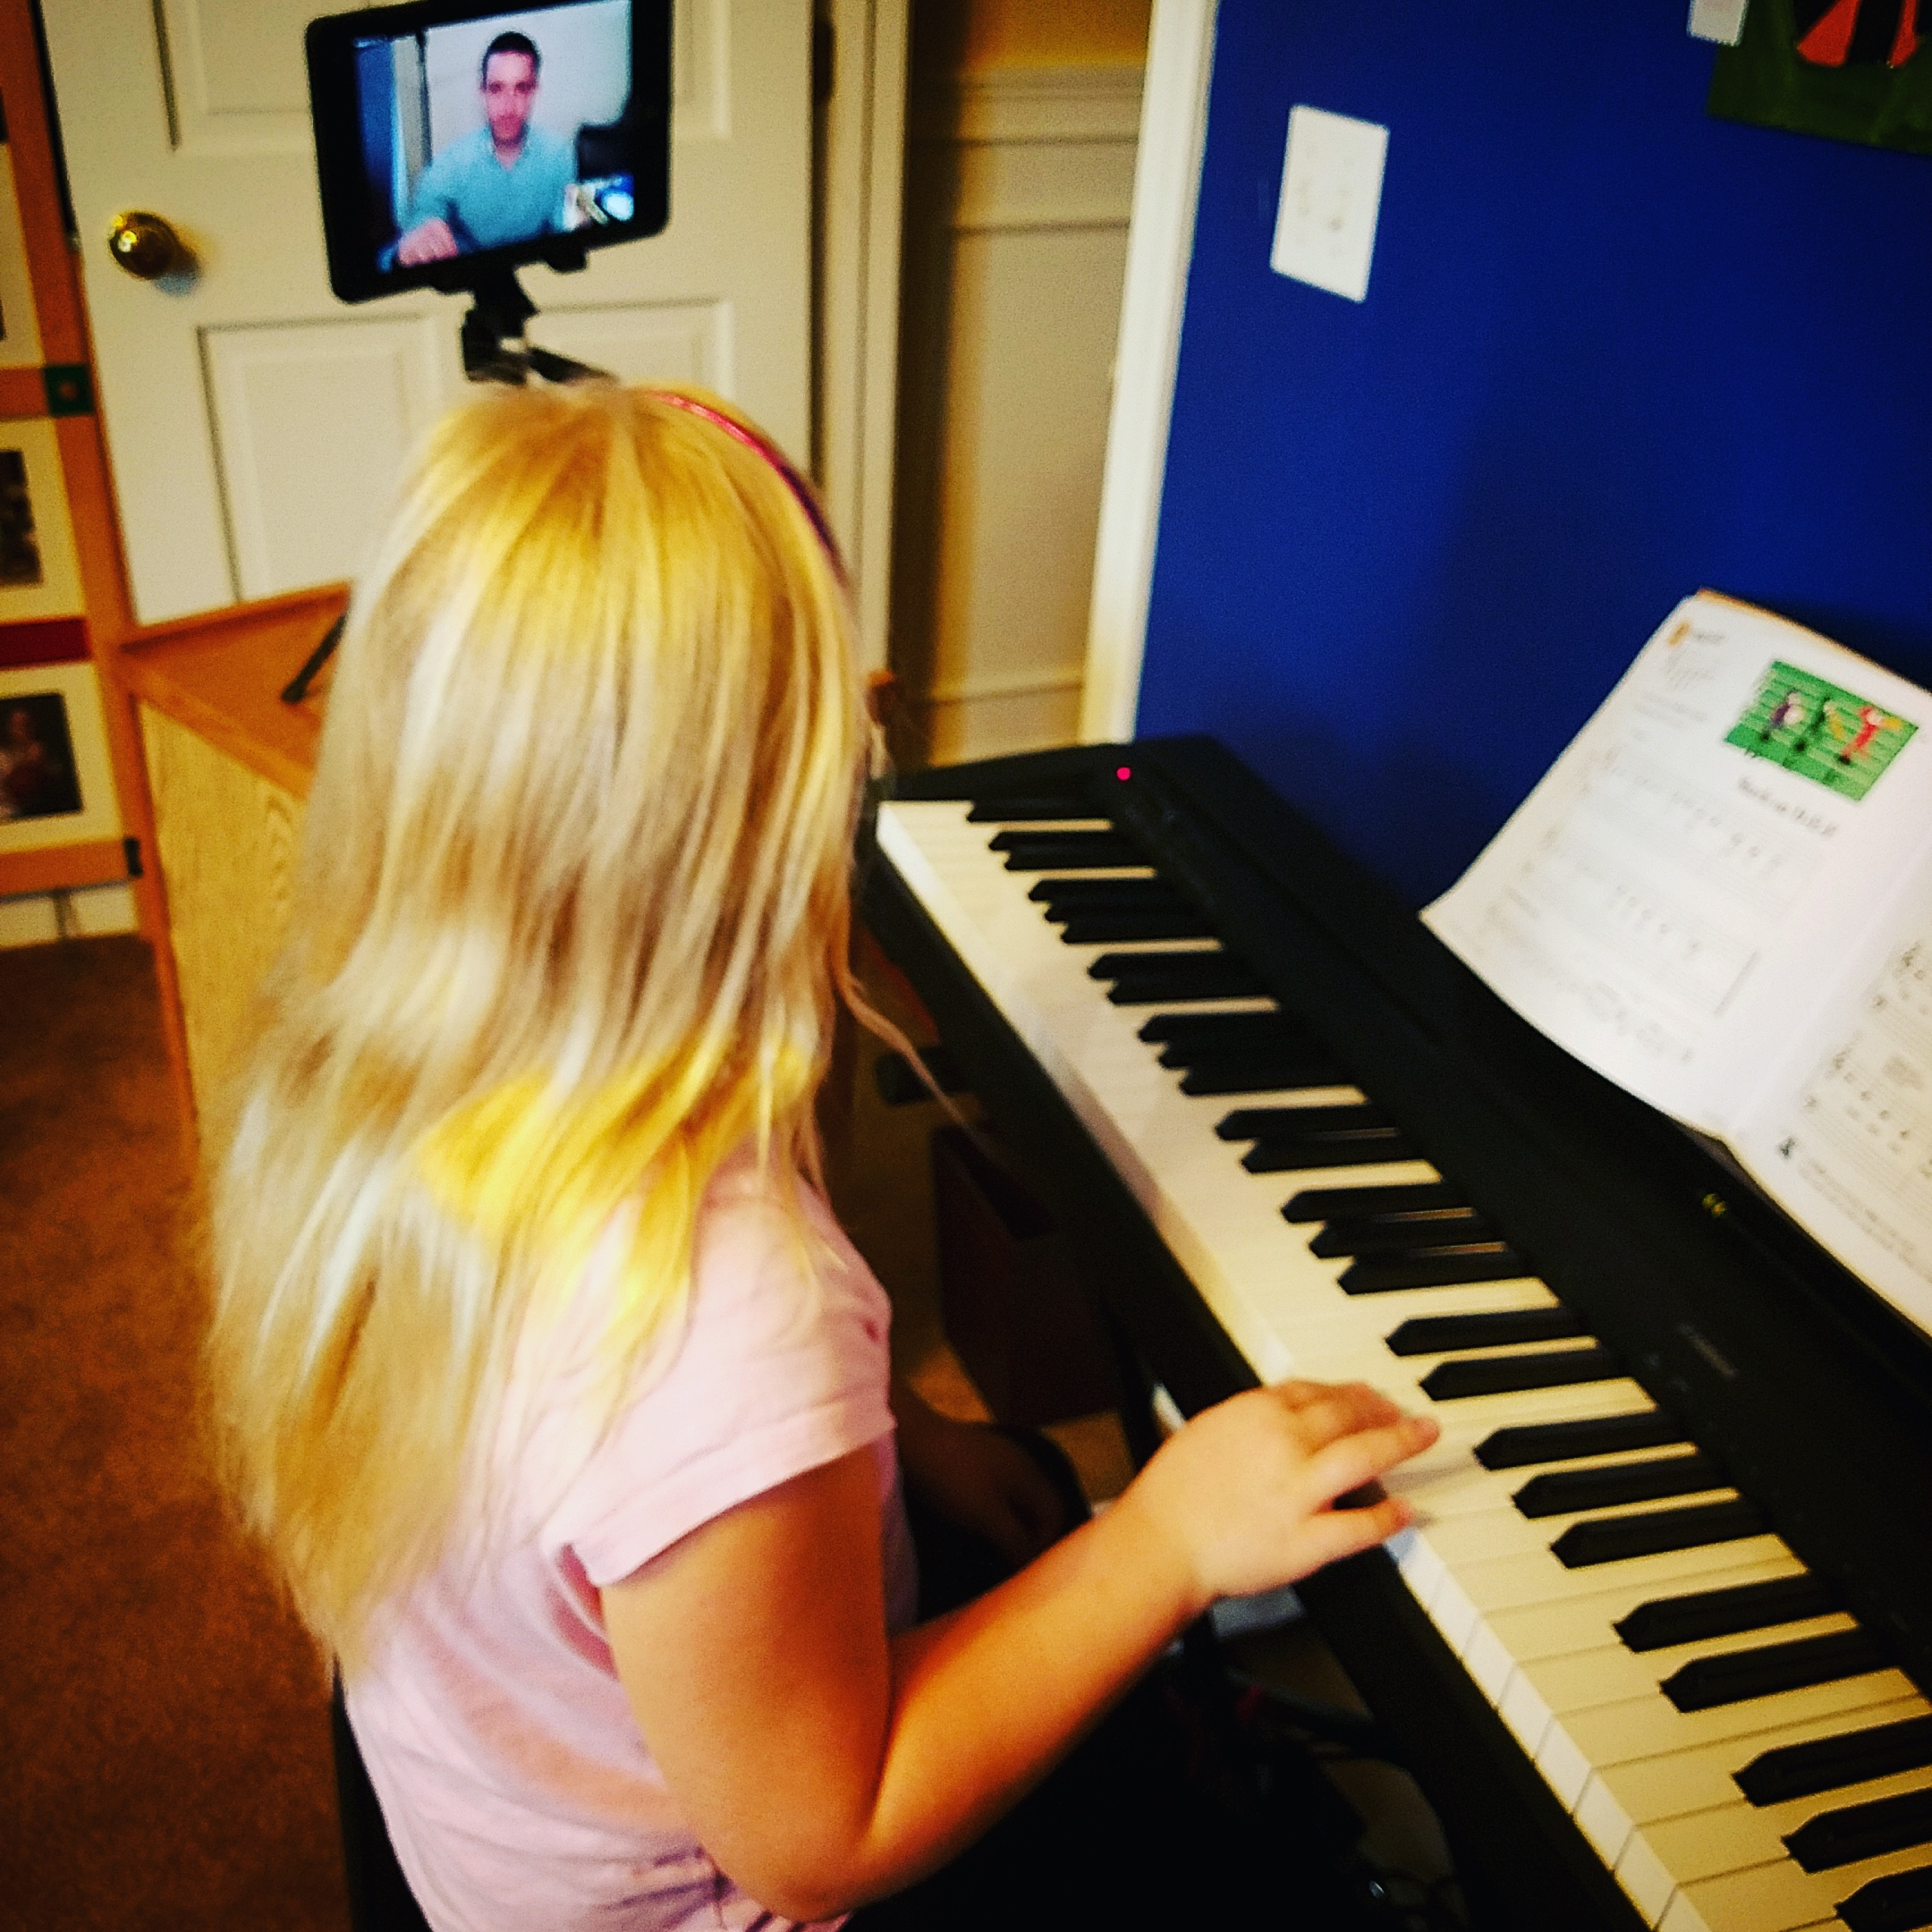 This is a great way for kids to take piano lessons without leaving home!